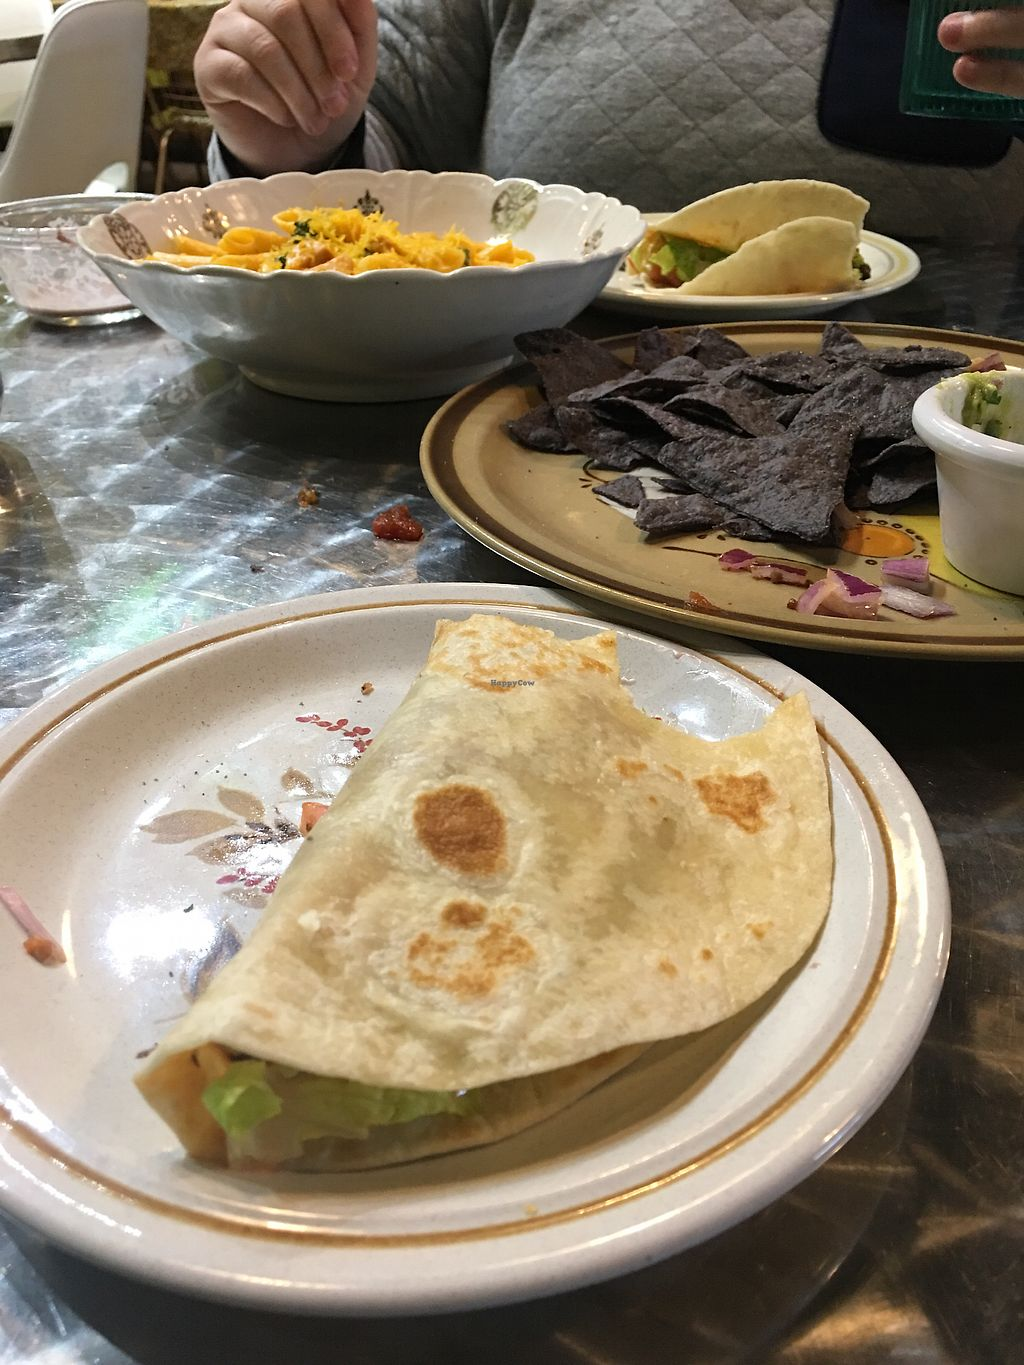 """Photo of Wicked Willow  by <a href=""""/members/profile/HeatherPolyard"""">HeatherPolyard</a> <br/>Half eaten taco. I was hungry! <br/> January 3, 2018  - <a href='/contact/abuse/image/100541/342731'>Report</a>"""